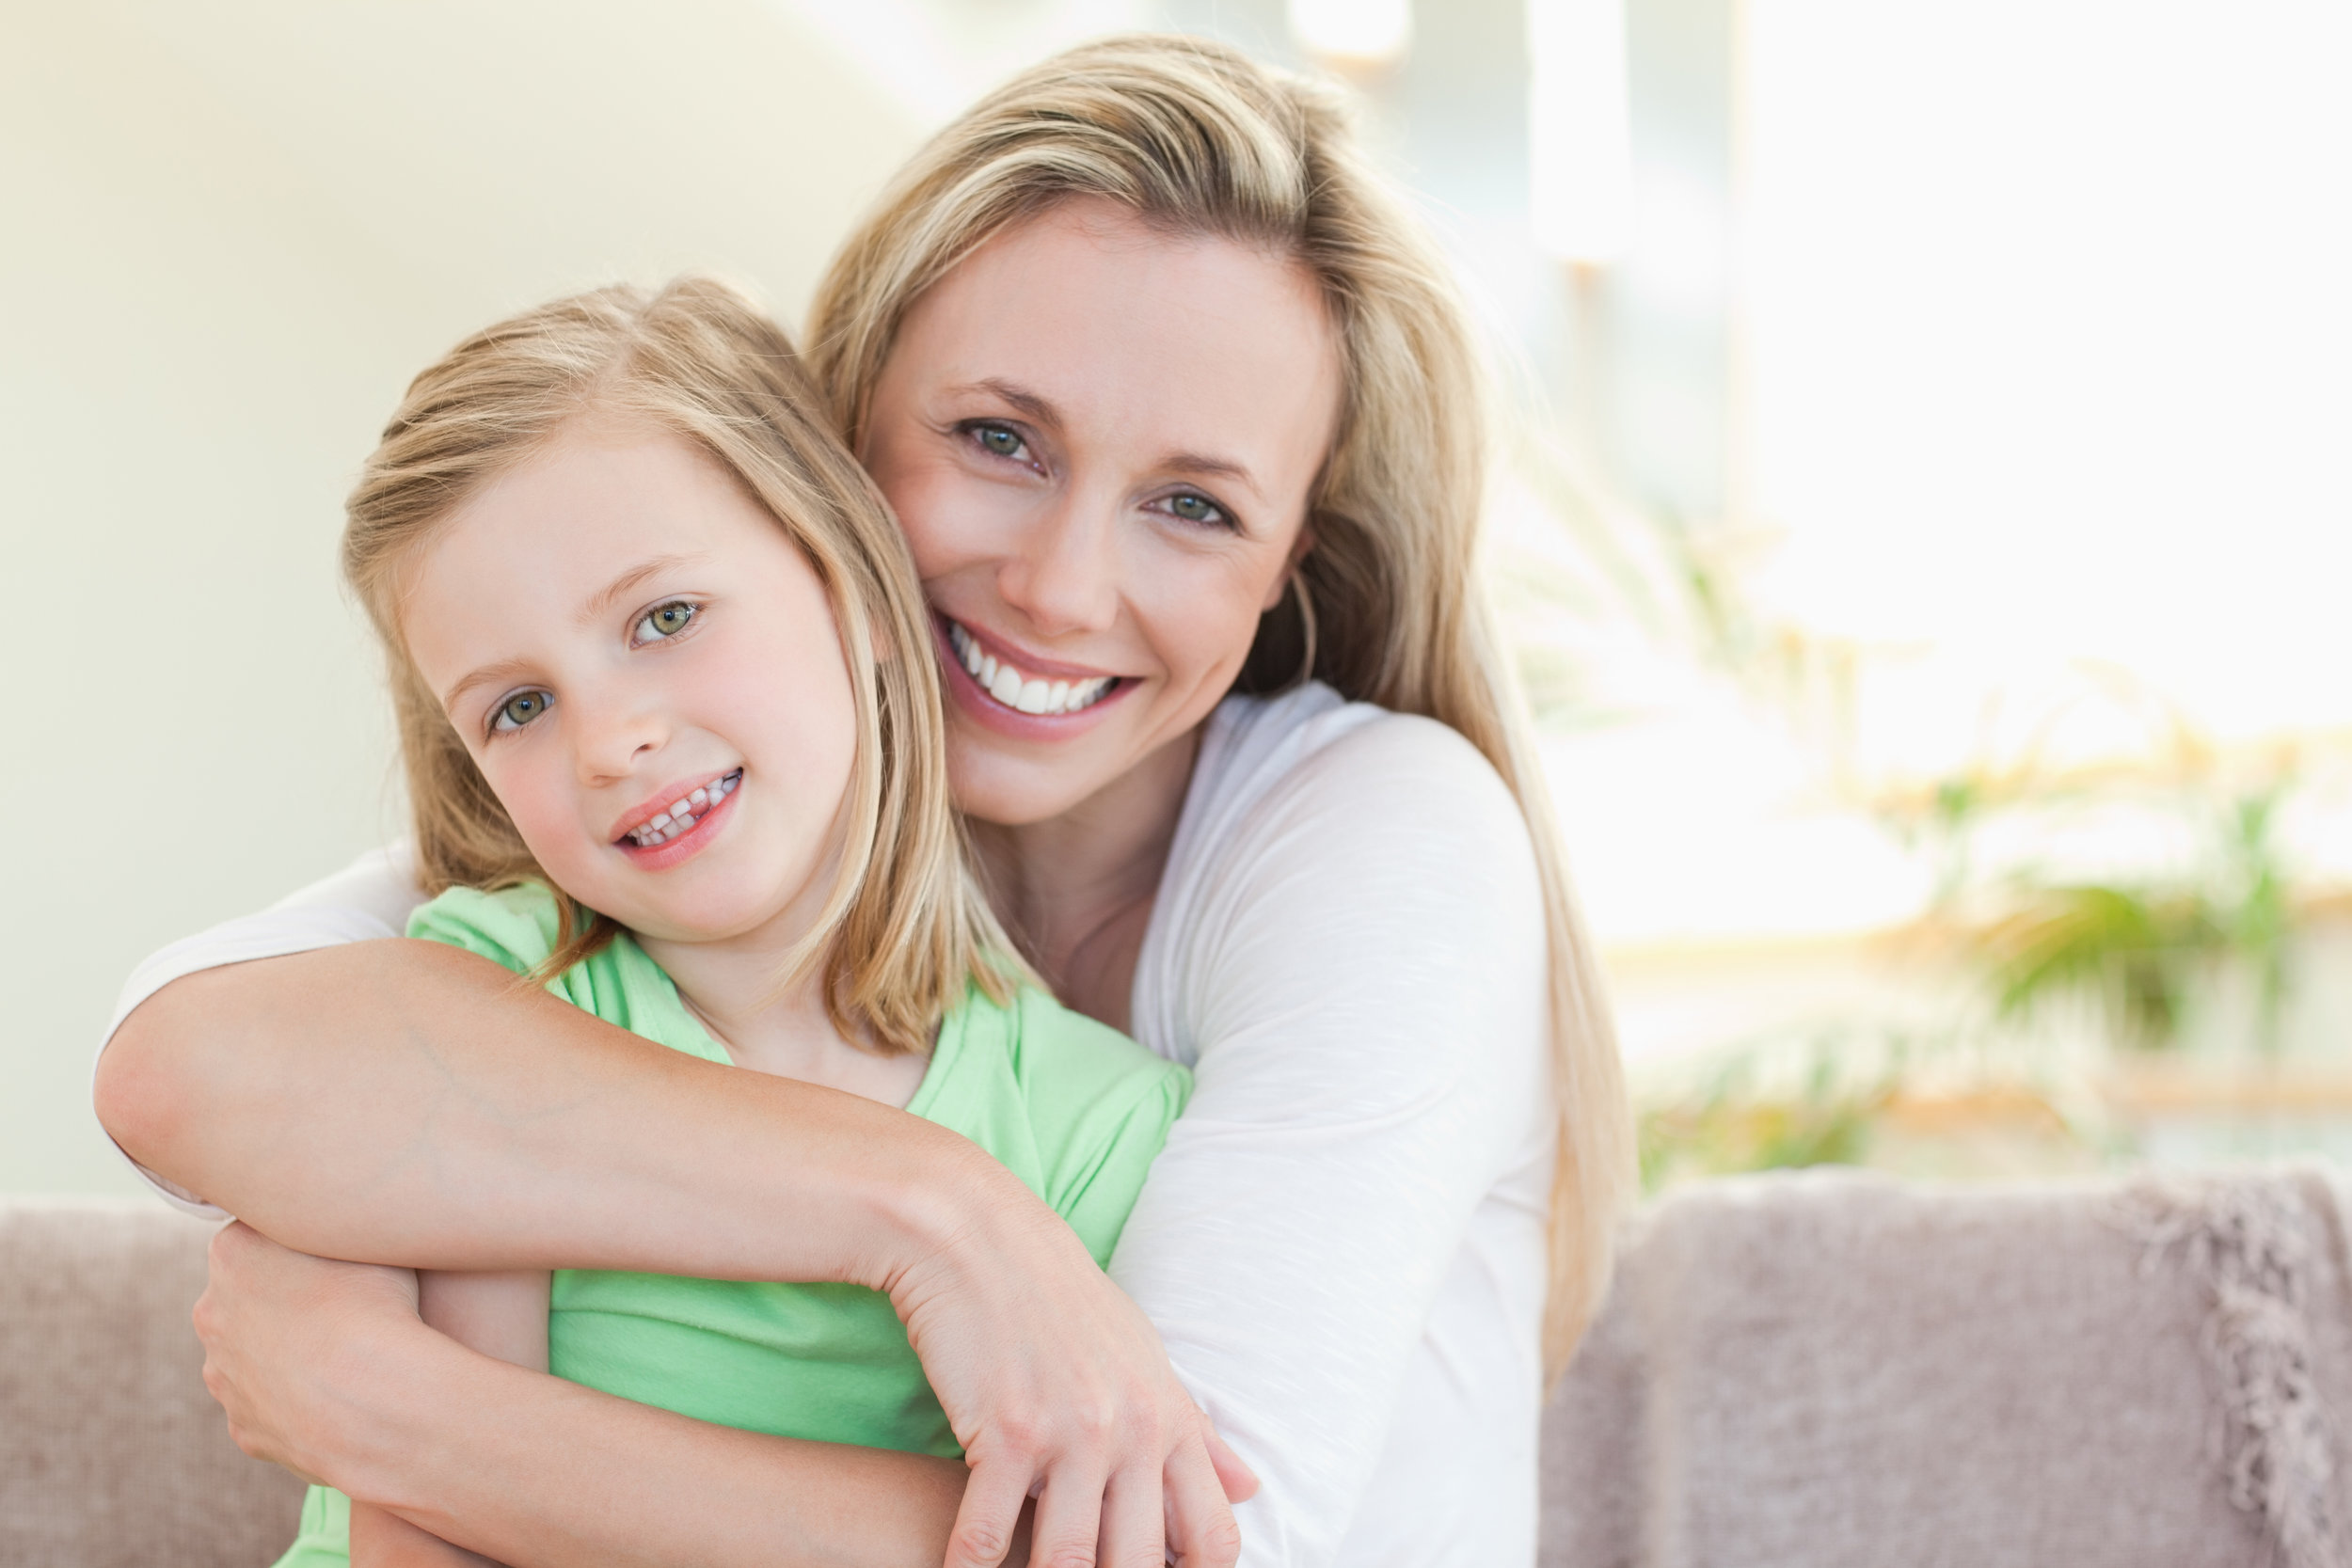 Looking at your child's physical and emotional needs when it comes to learning differences